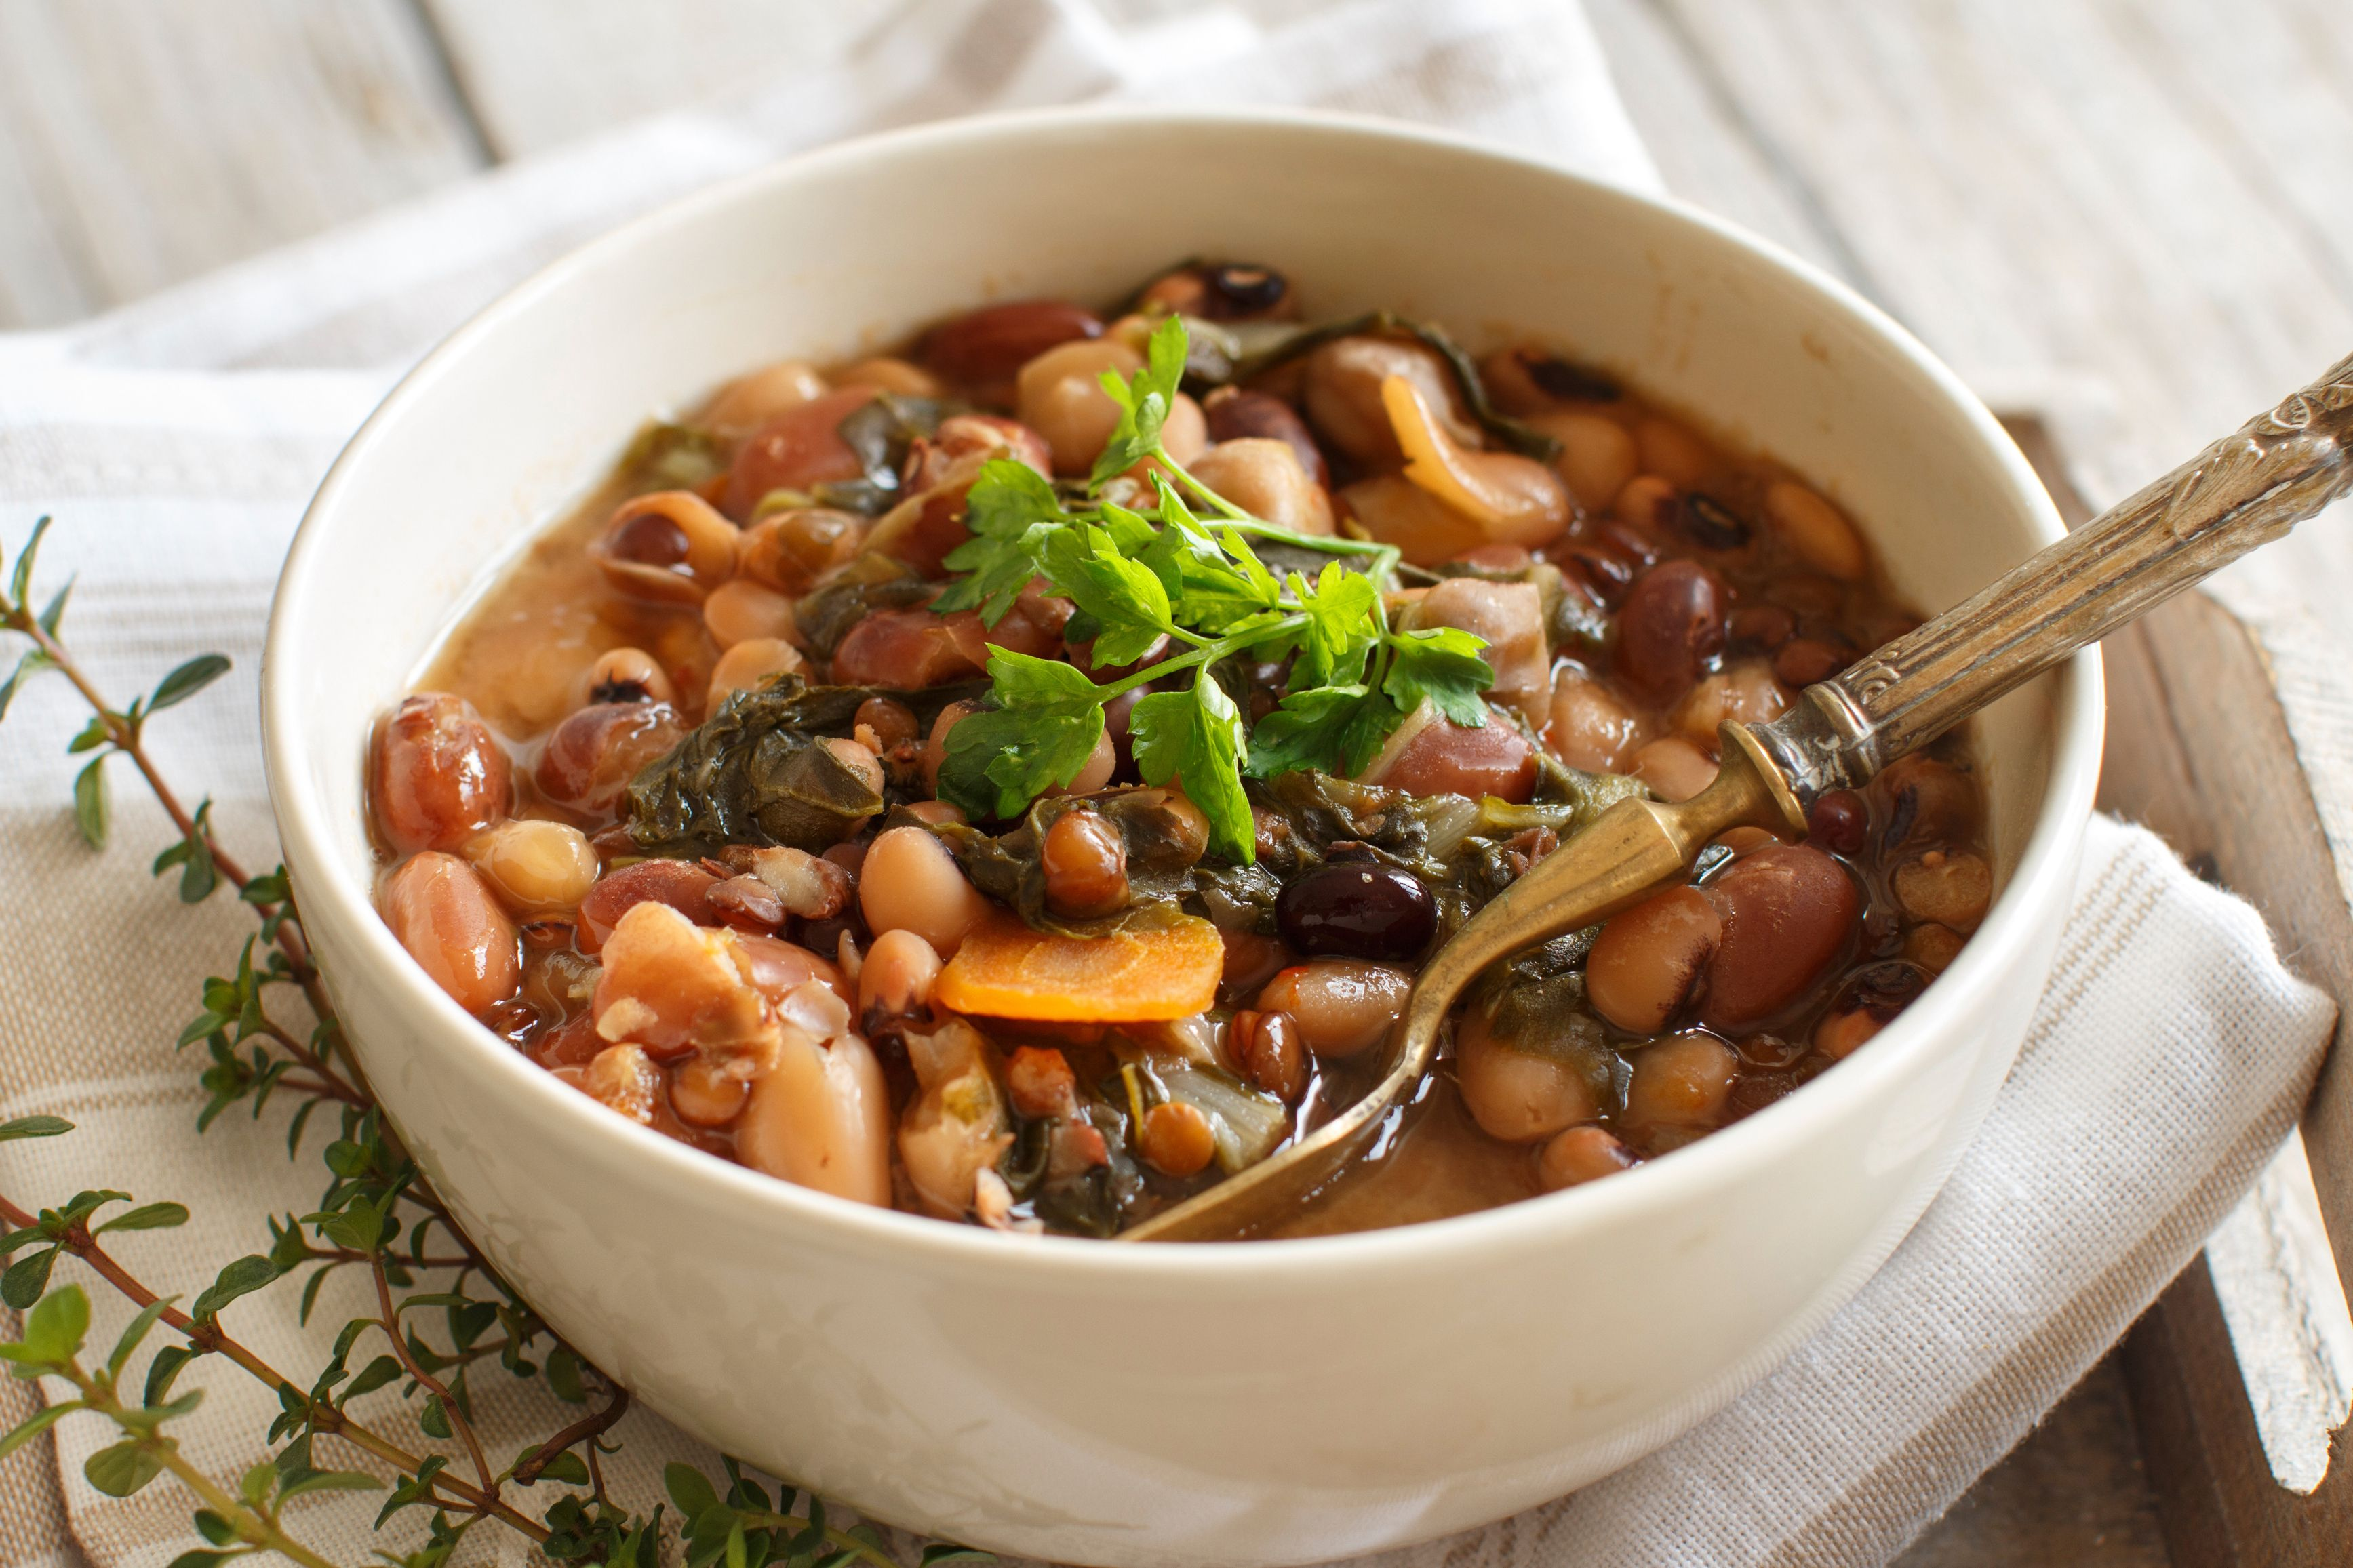 Cooked legumes and vegetables in a bowl